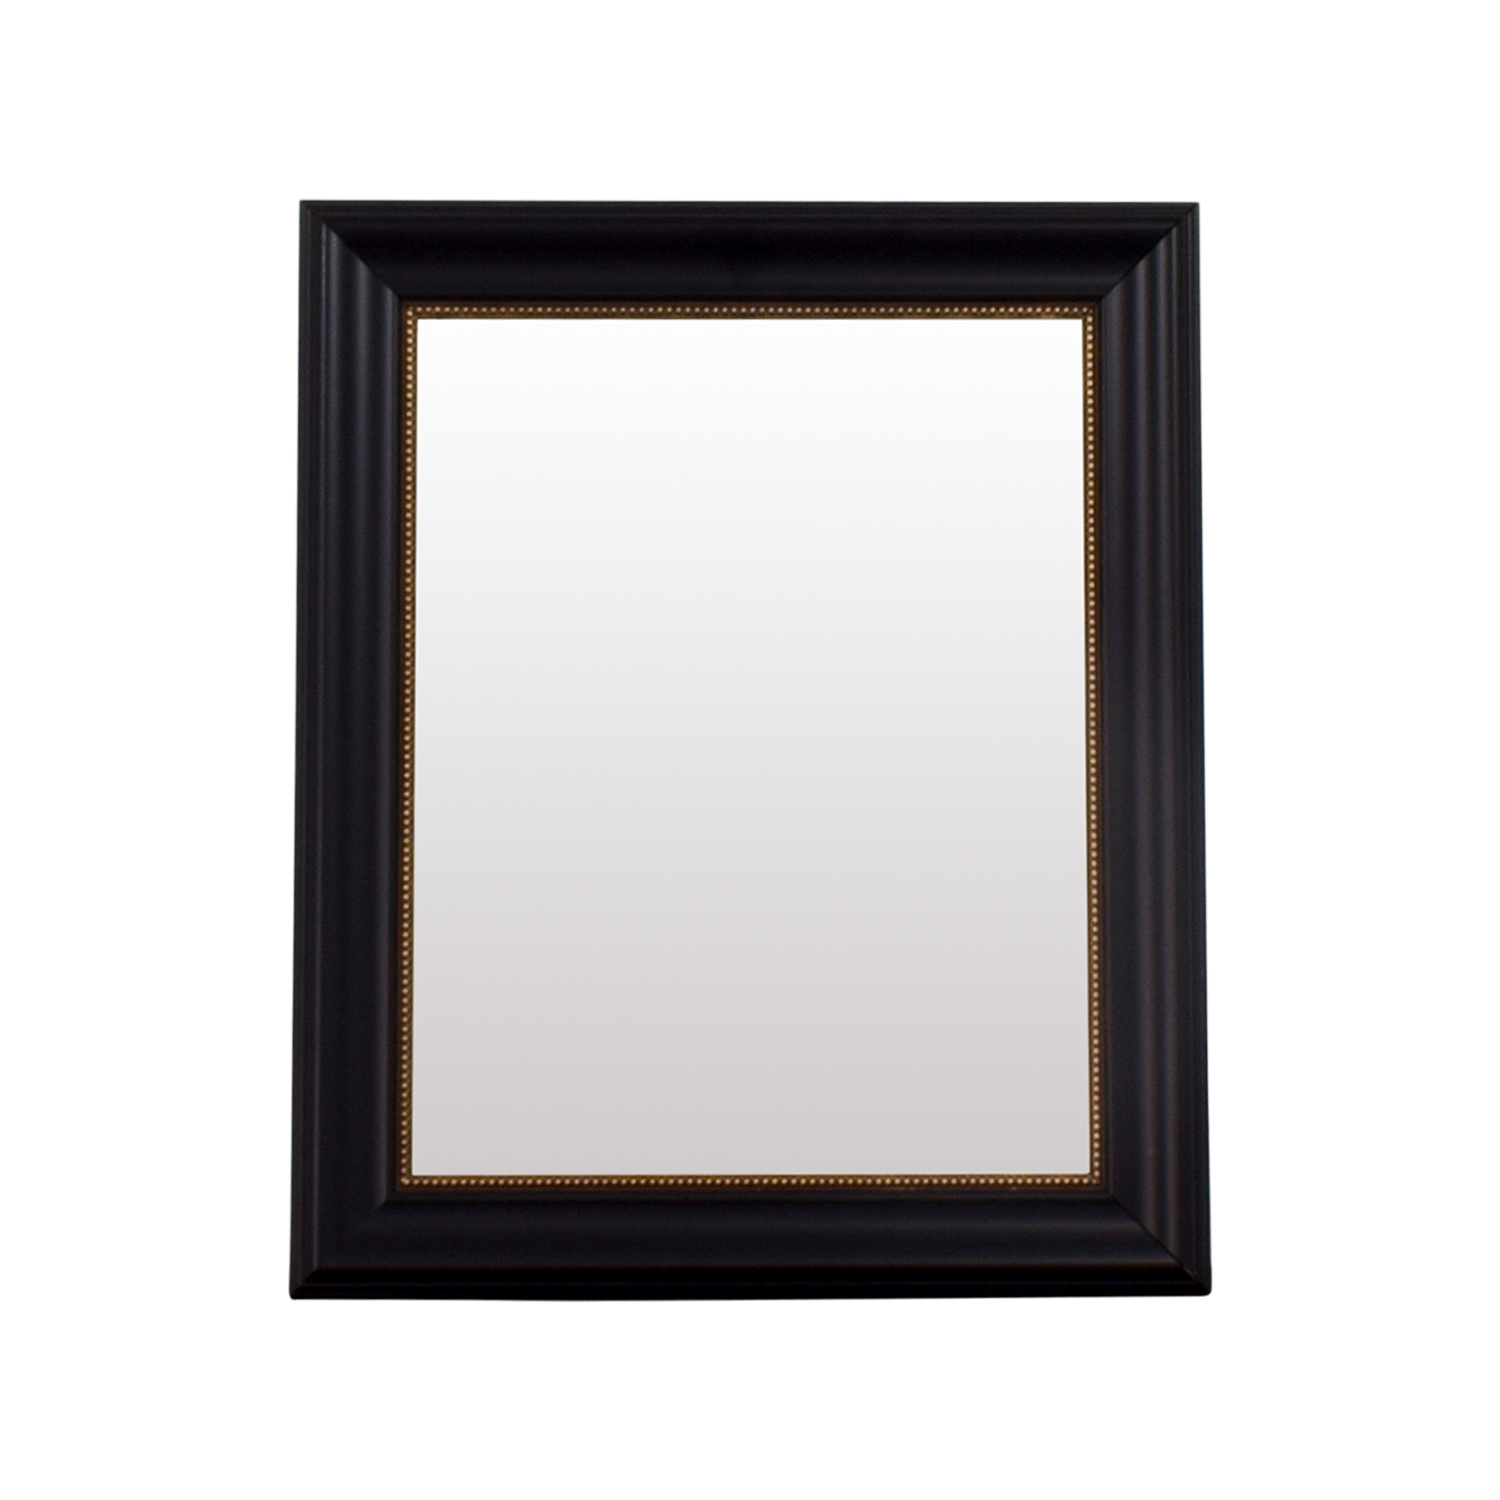 HomeGoods HomeGoods Black and Gold Beveled Mirror dimensions